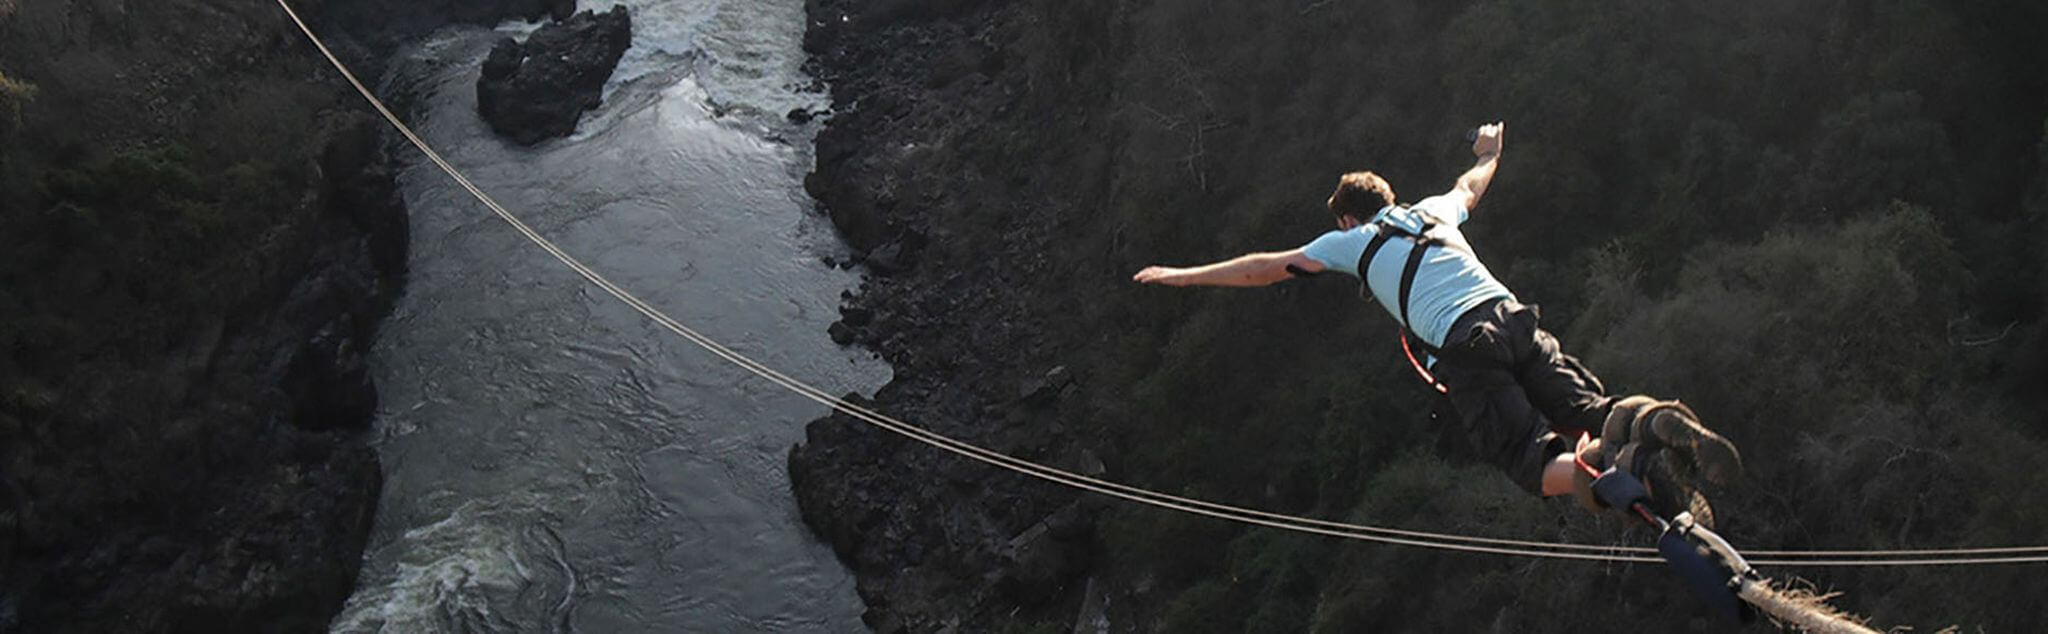 Bungee Jumping in Moray